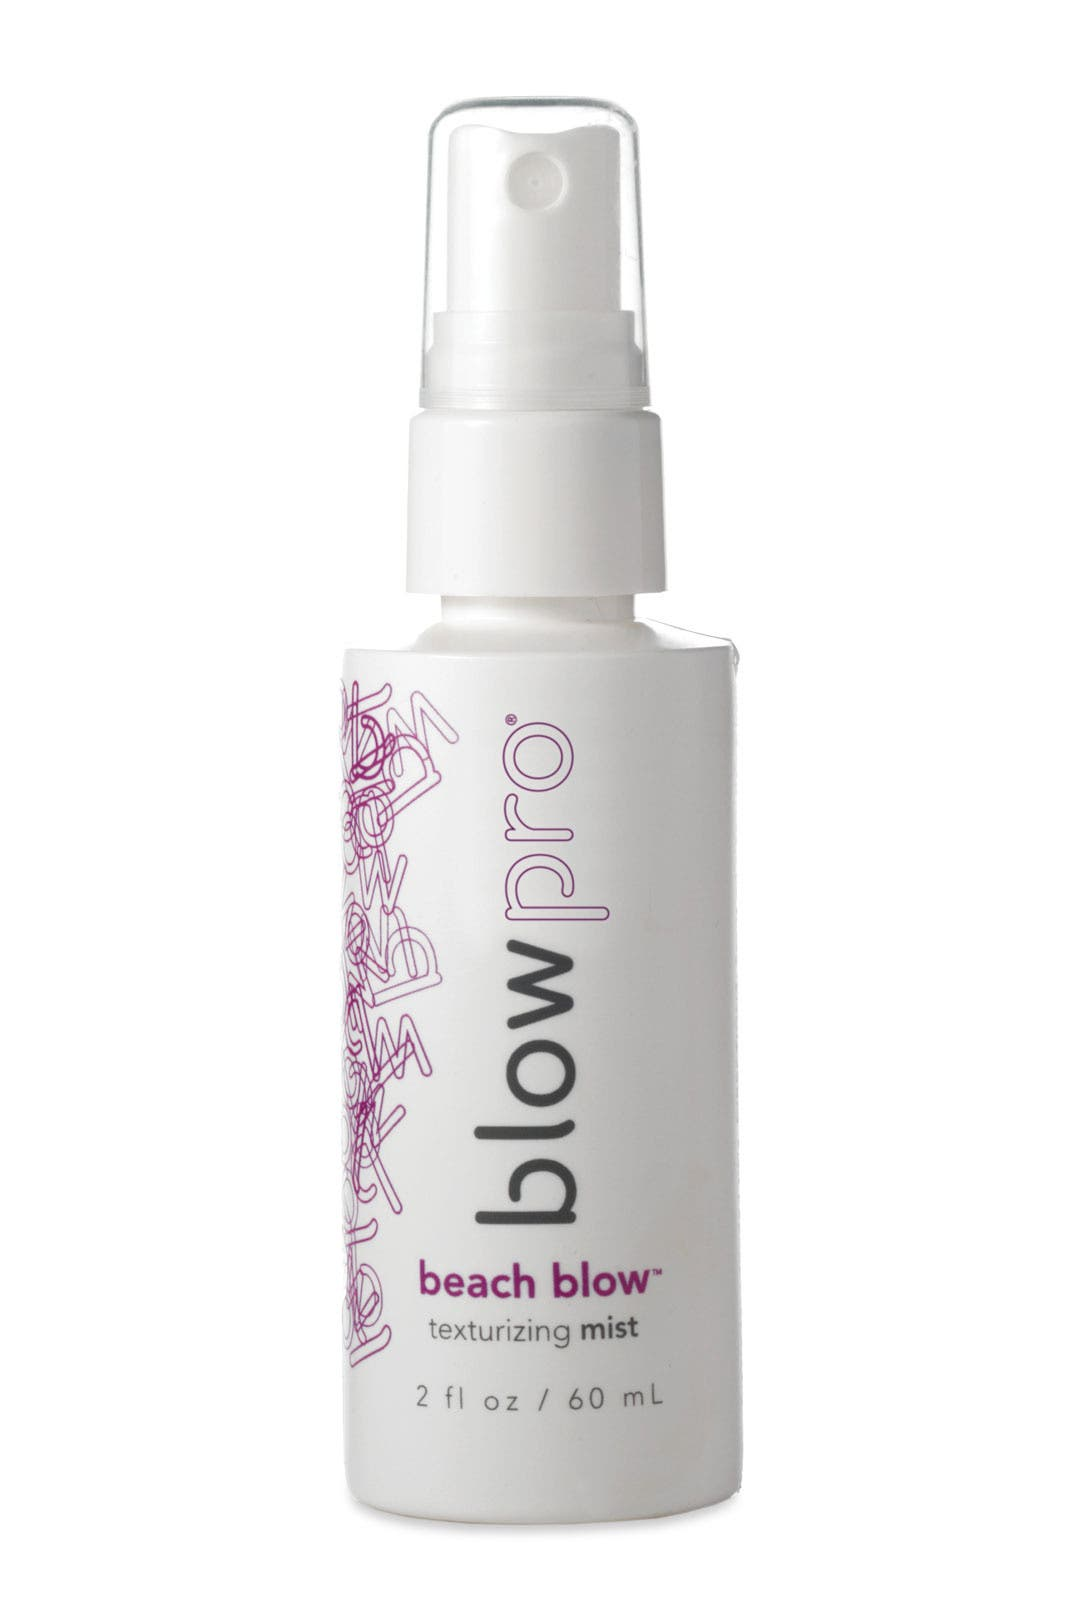 Beach Blow Texturizing Mist by blowpro